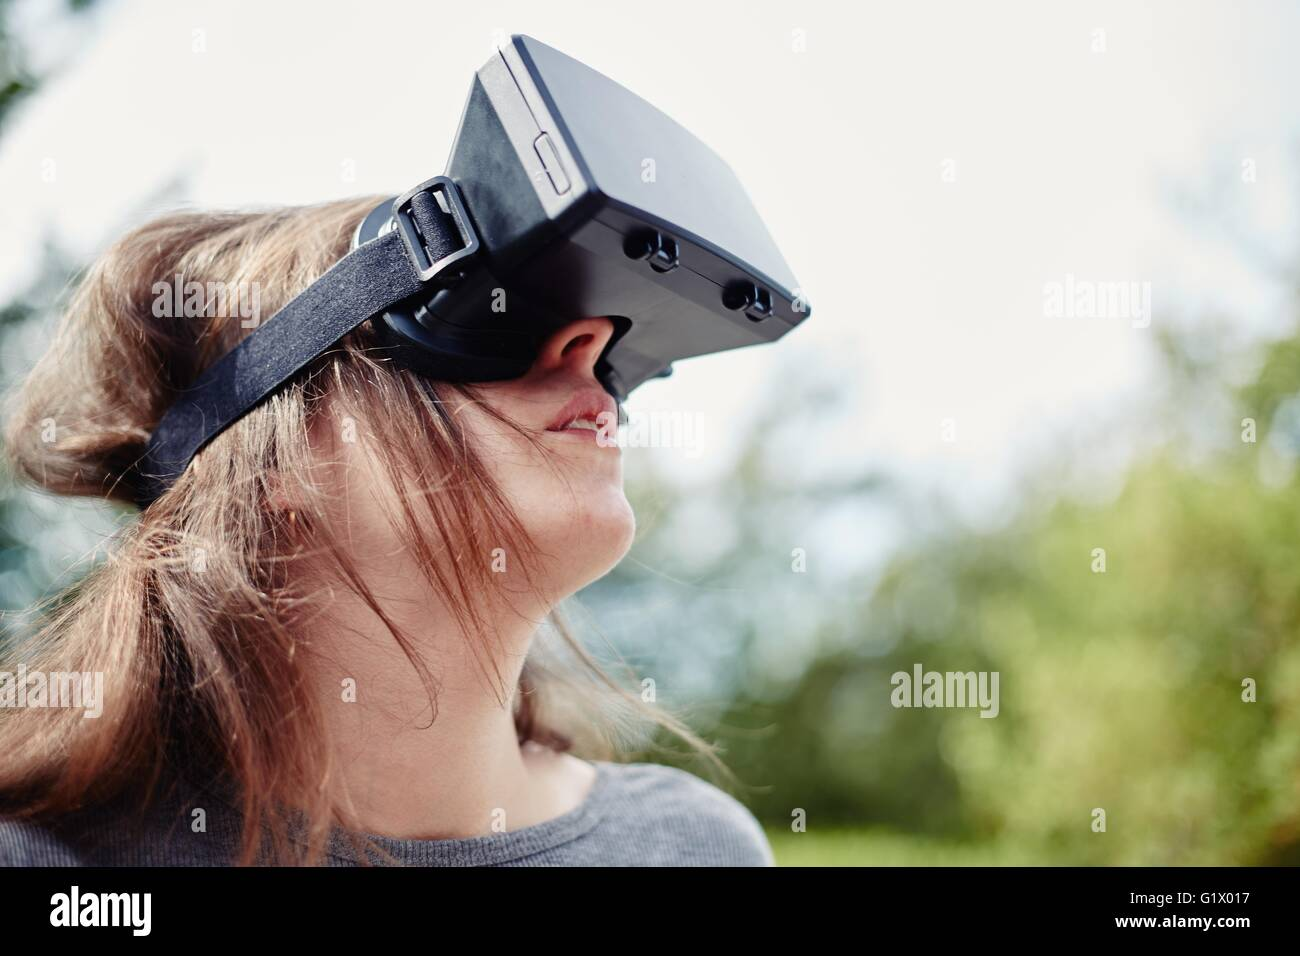 Young woman using a virtual reality headset - Stock Image